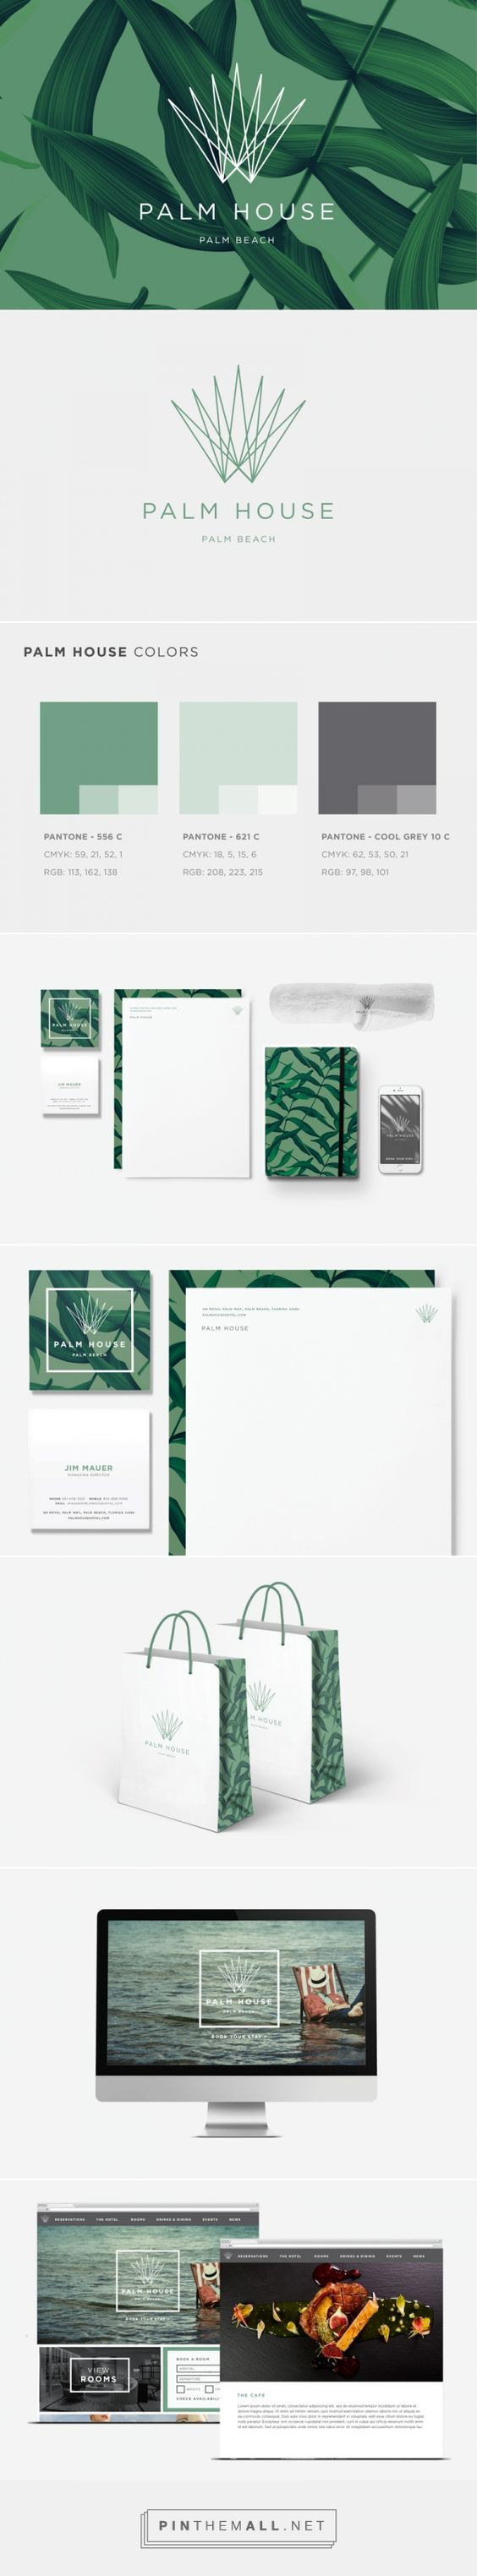 Palm House Restaurant Branding on Behance